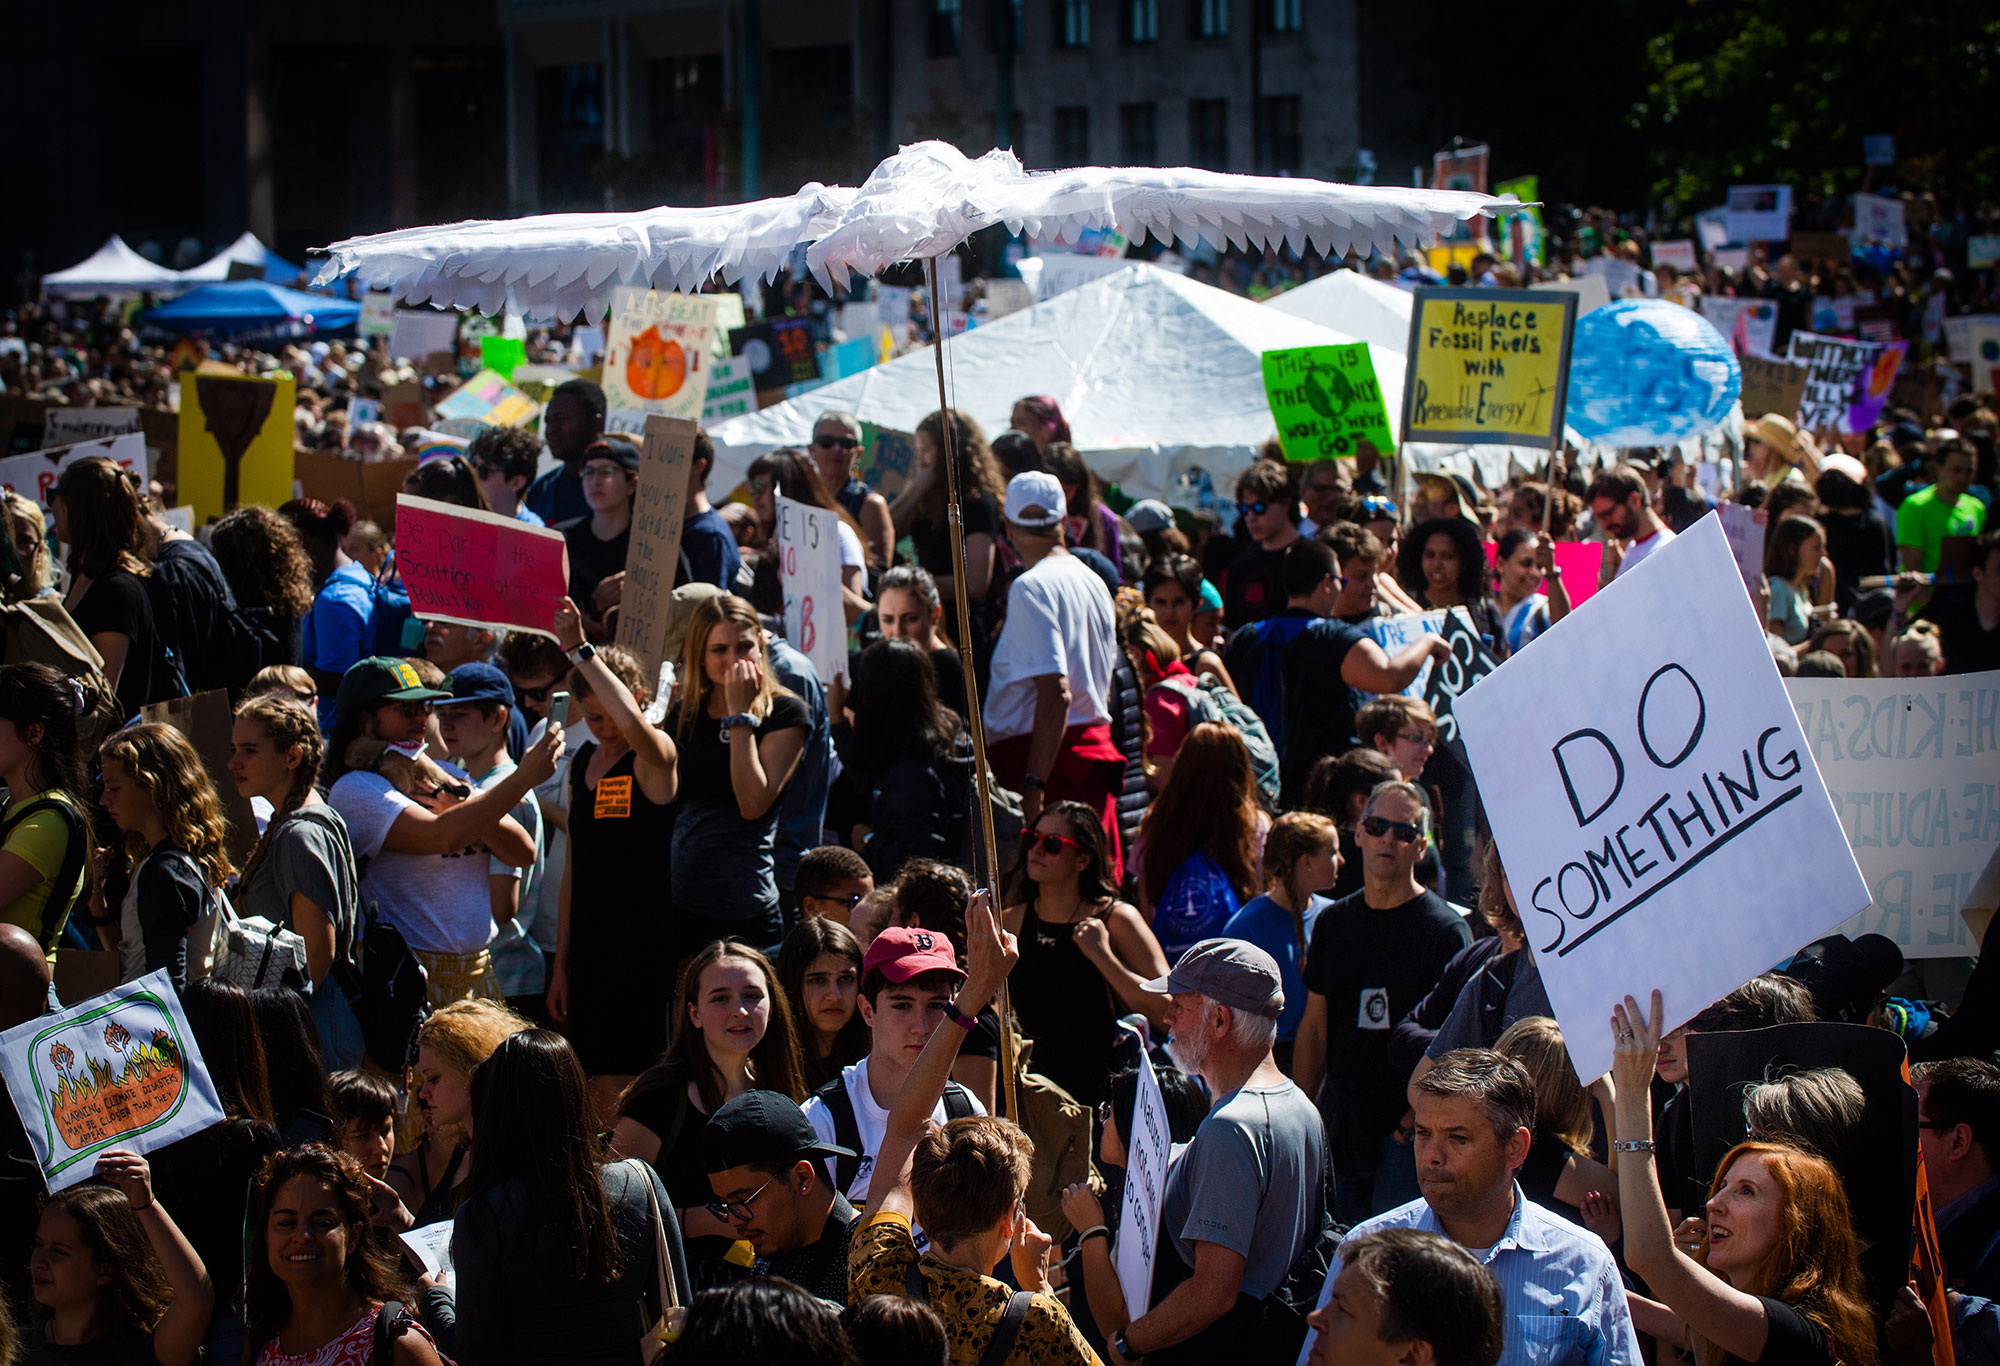 A large crowd of people hold signs and protest during the Youth Climate Strike on City Hall Plaza, Boston.